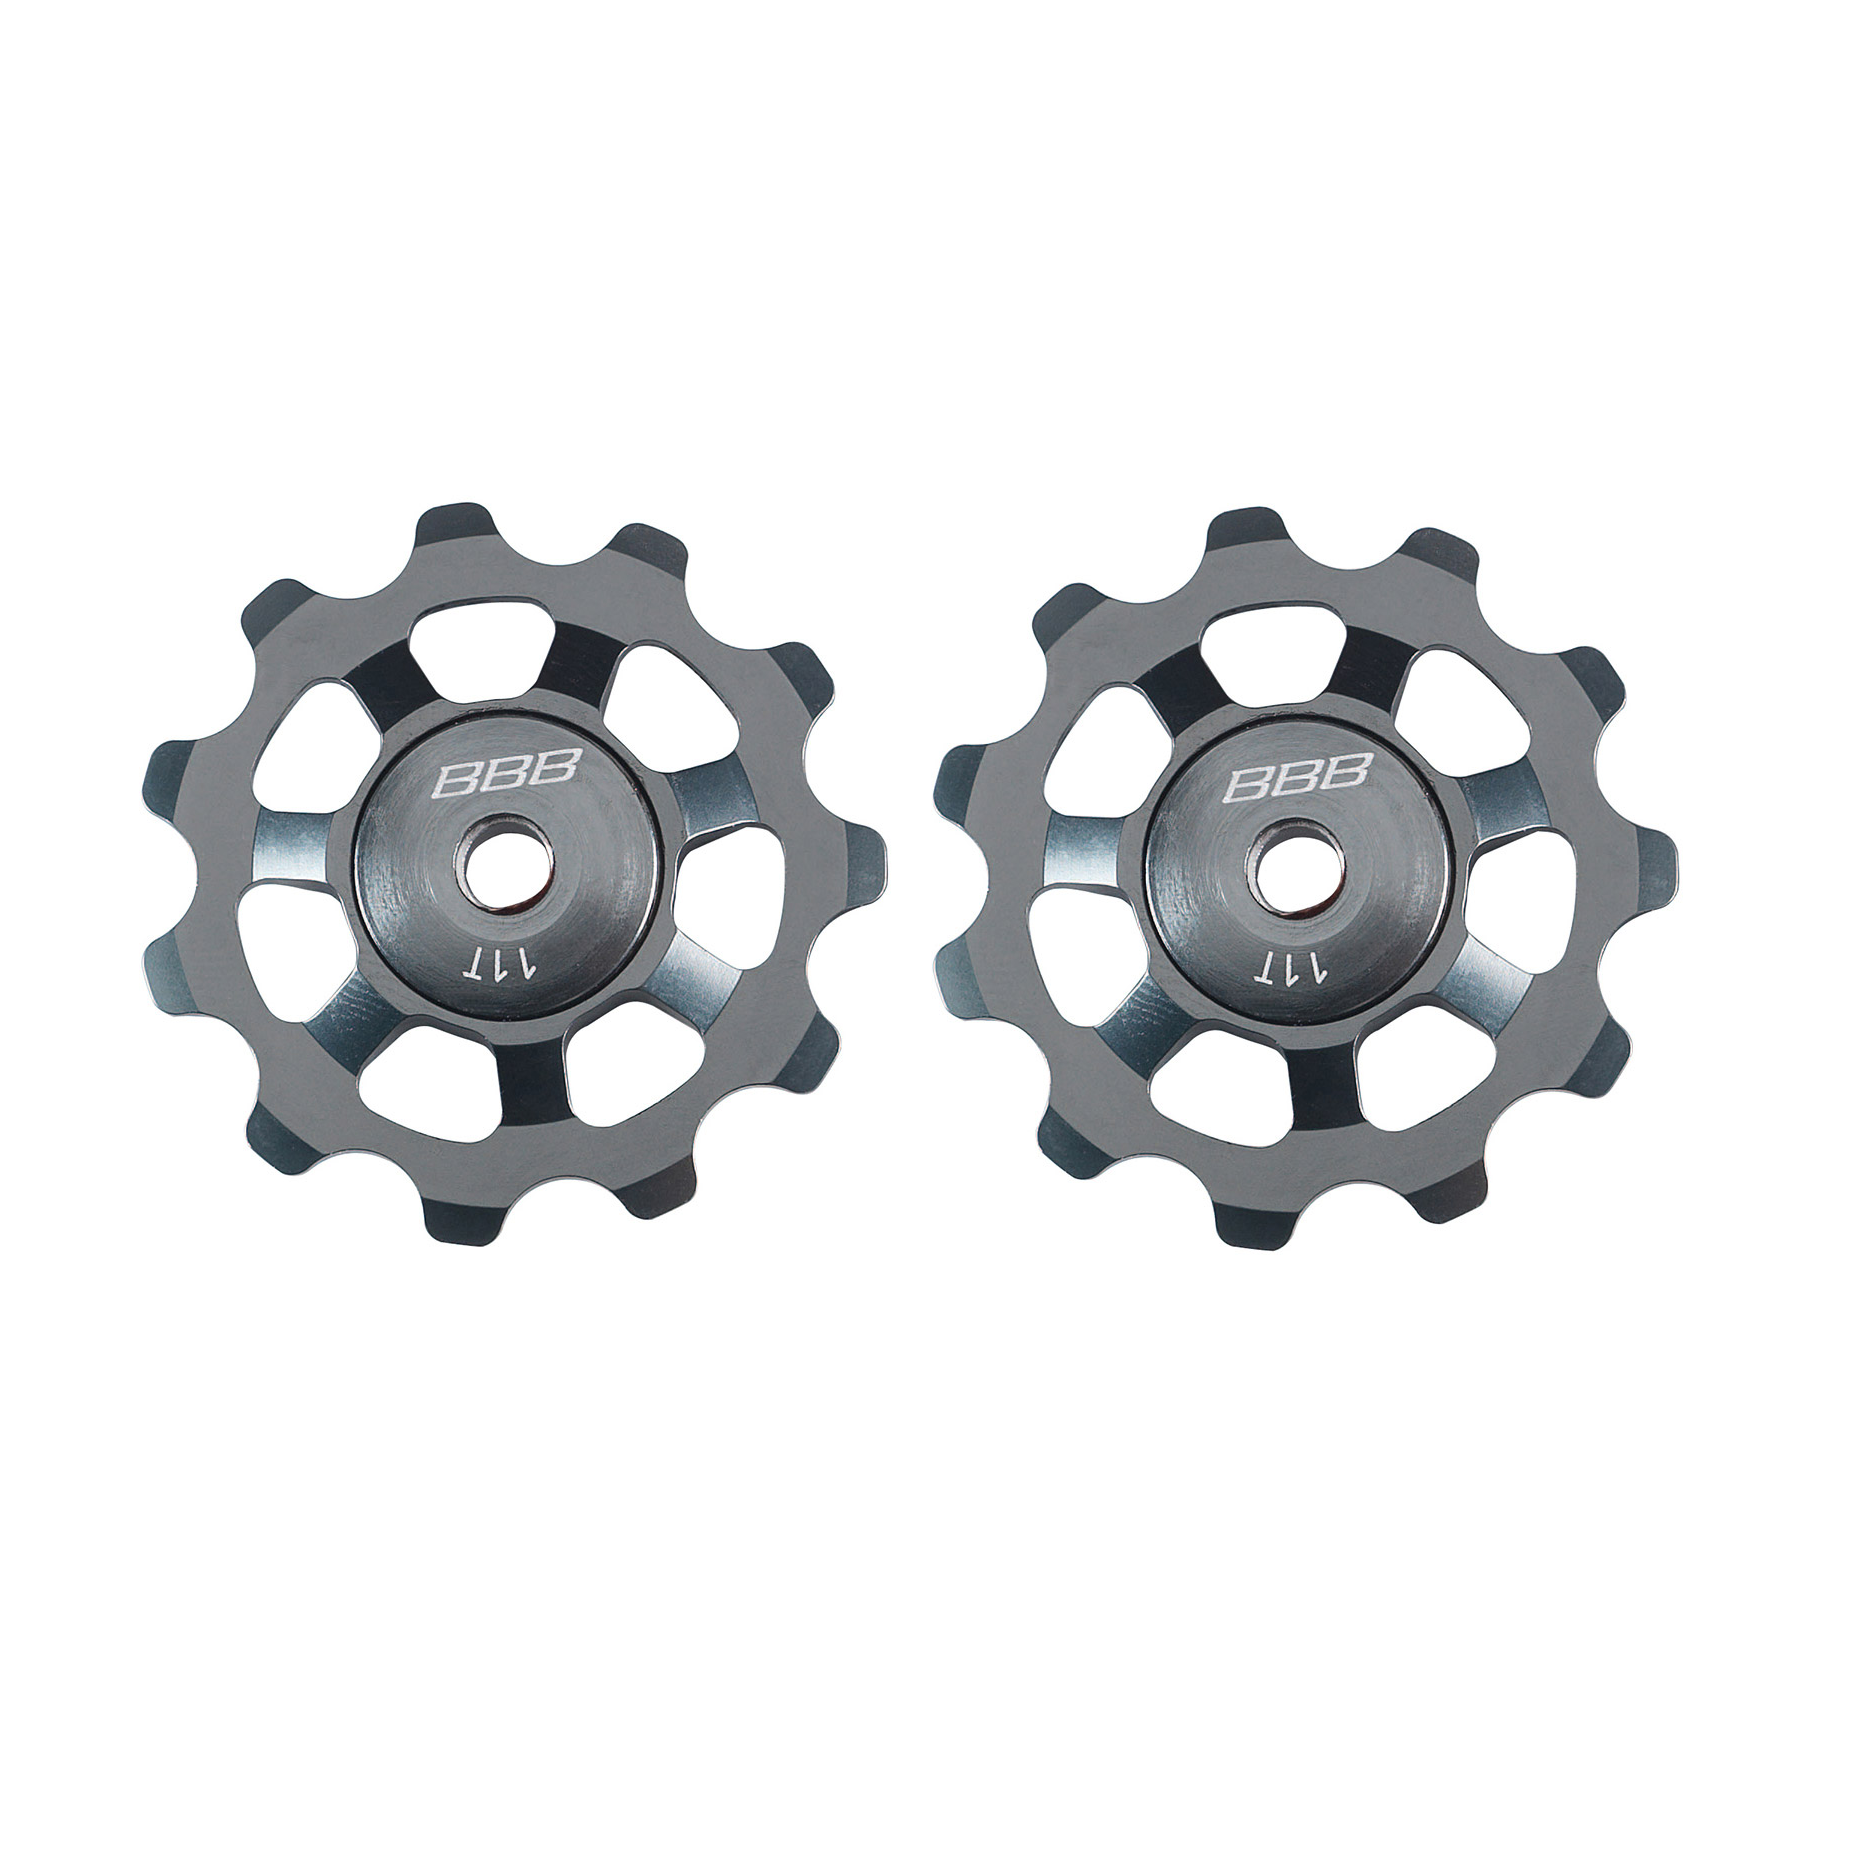 BBB Components > Chains & Chainlinks,Components > Gears BBB ALUBOYS JOCKEY WHEELS 11T GREY BDP-21